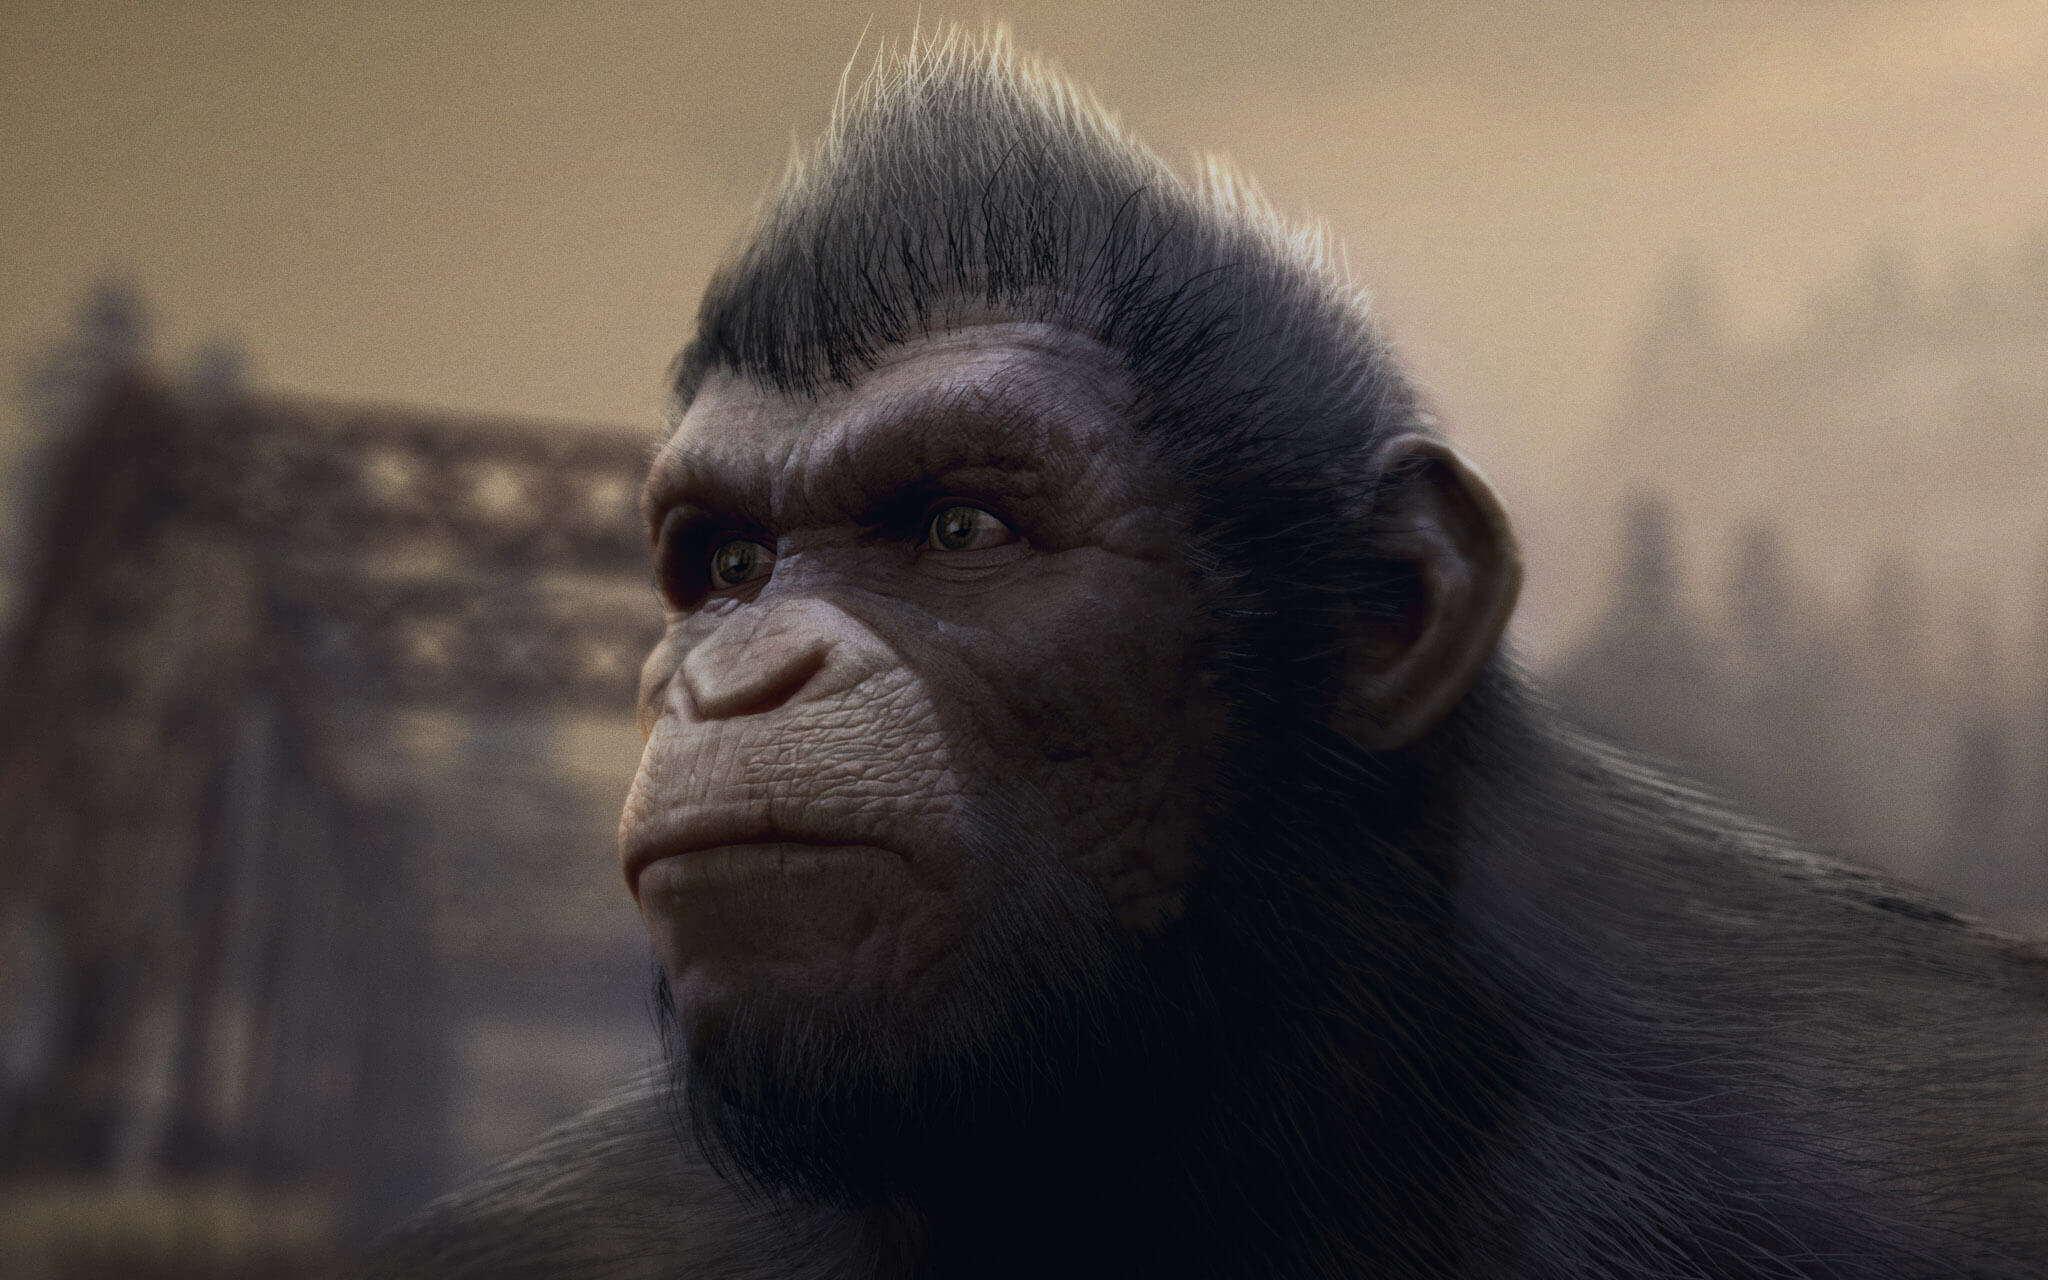 Planet of the Apes: Last Frontier (PS4, XBOX, PC)